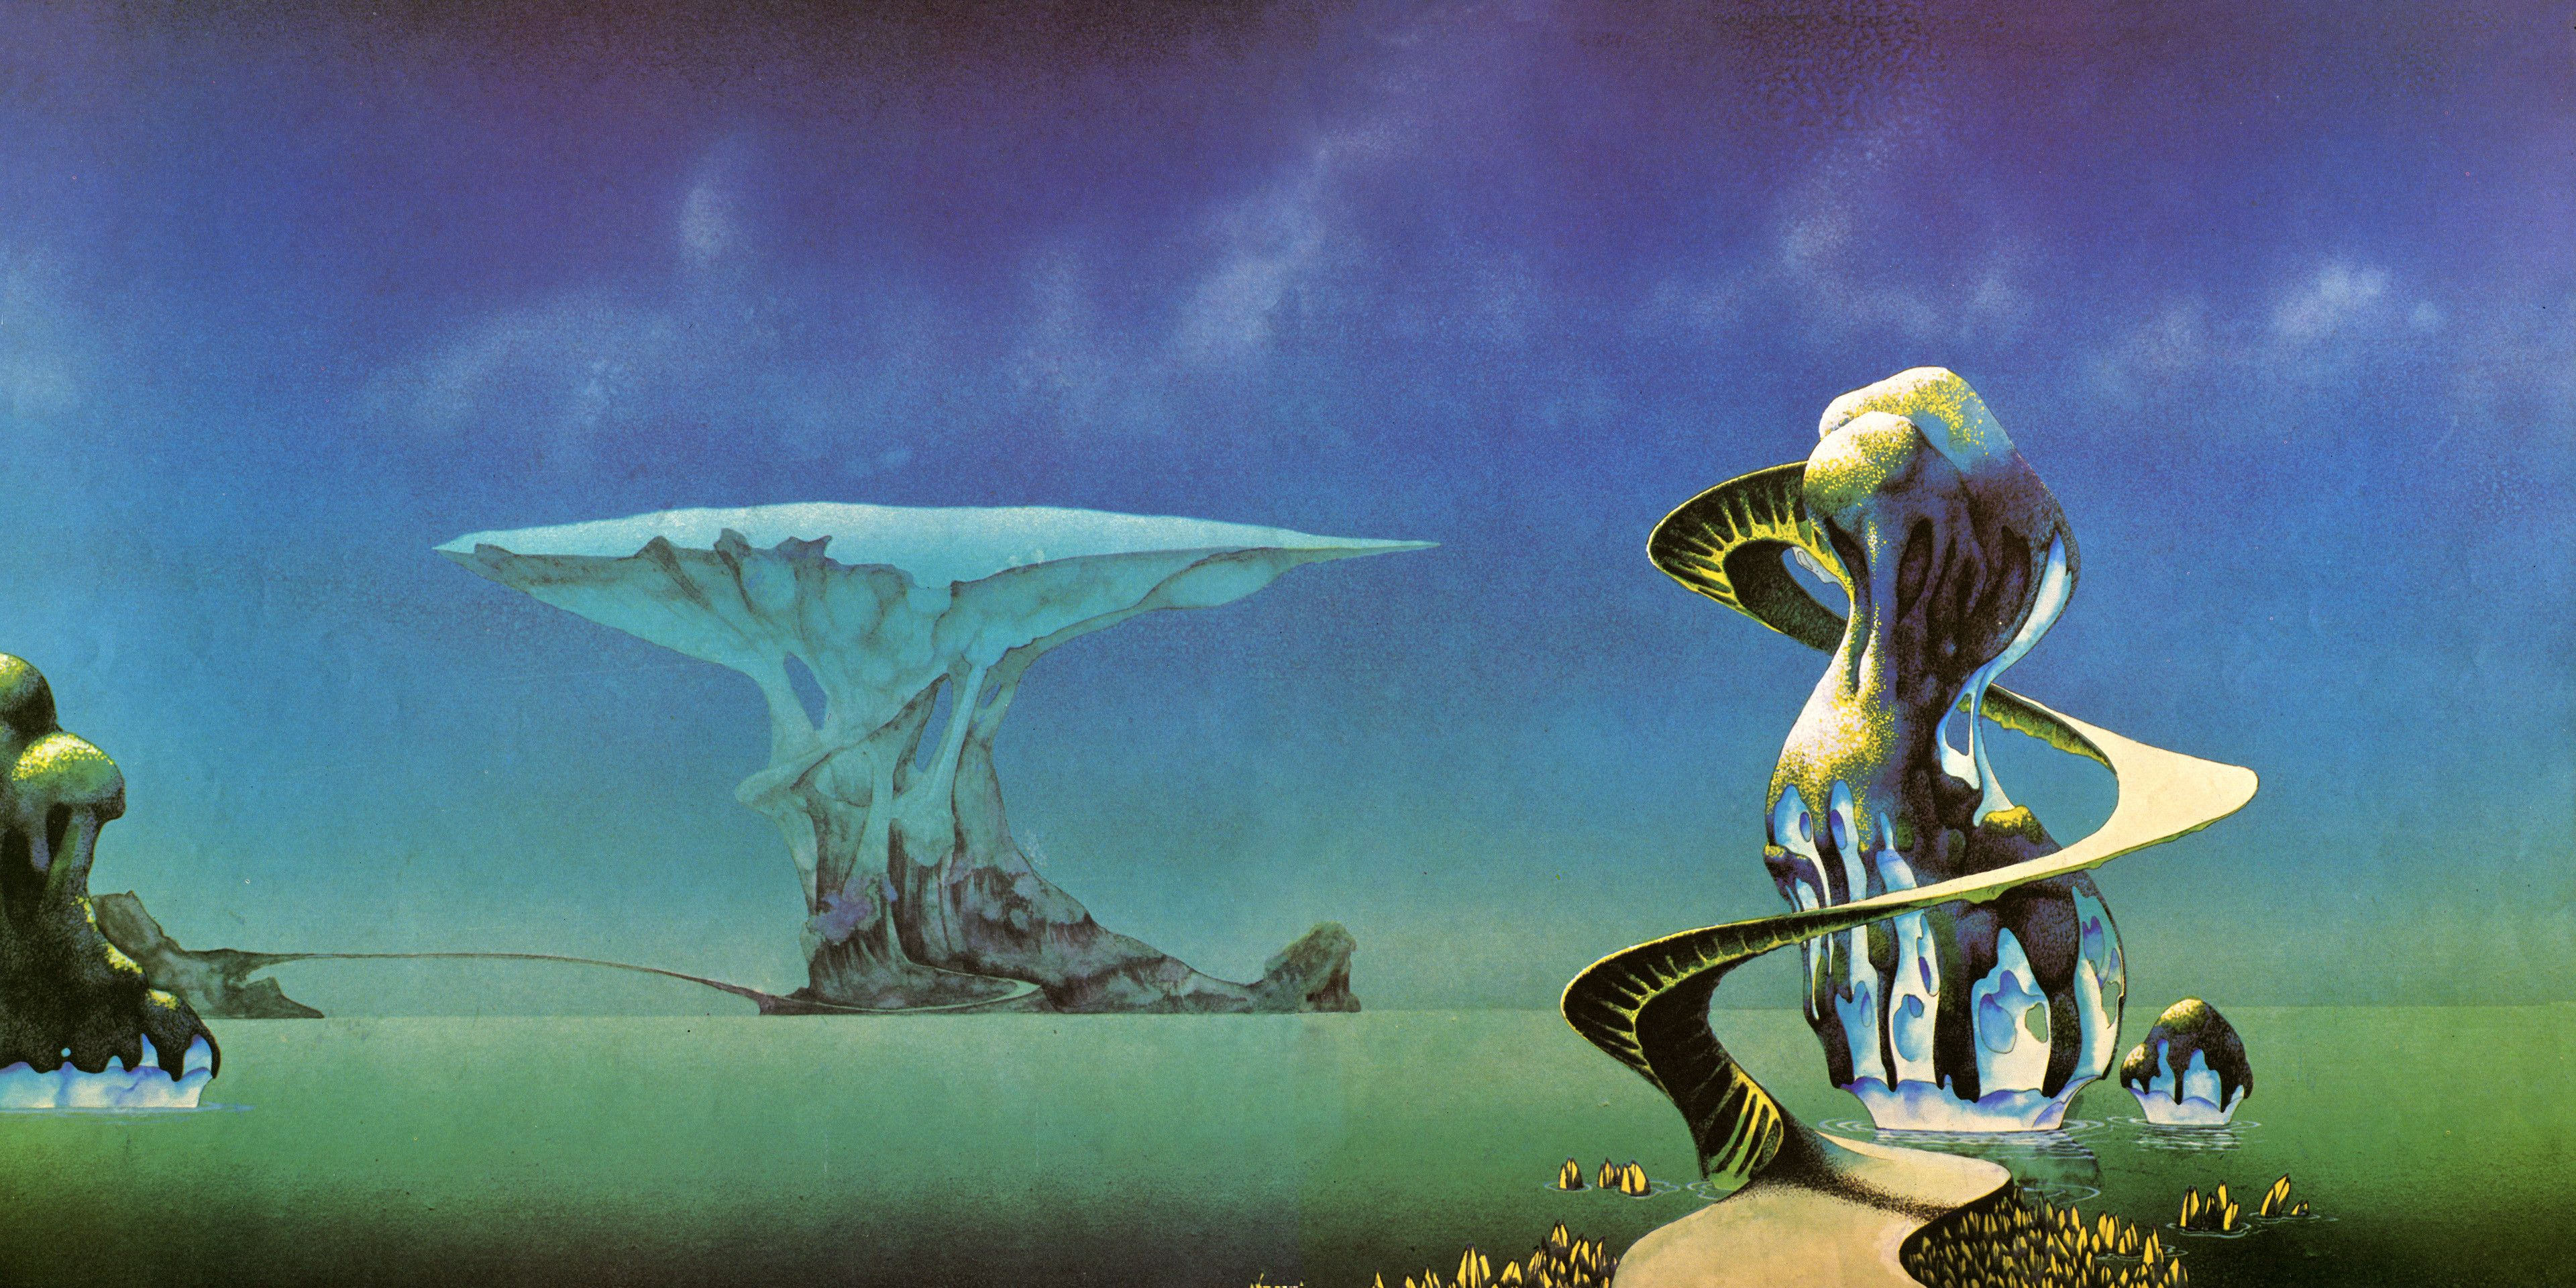 Roger Dean 023 Jpg 3840 1920 70s Sci Fi Art Fantasy Illustration